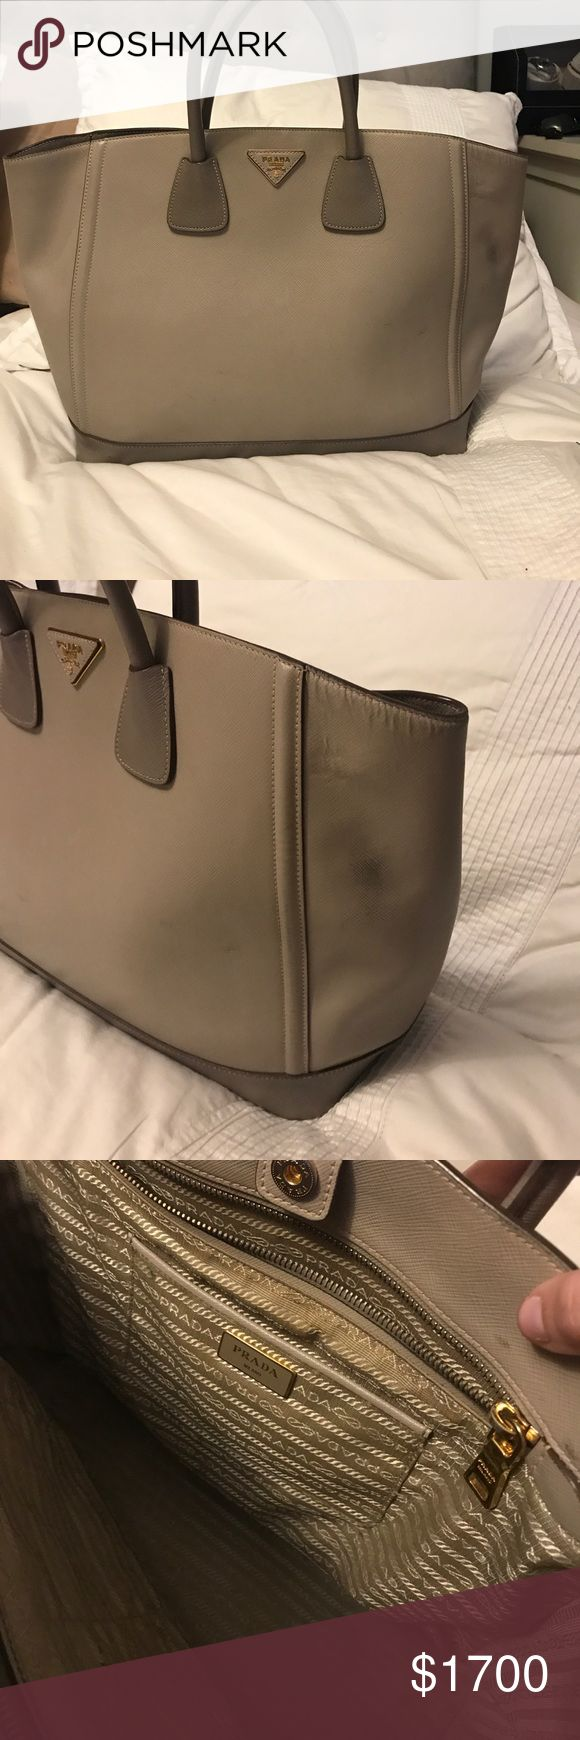 Prada bag Grey Prada bag for sale. Small black marks on the side but all in all in good condition! Prada Bags Satchels